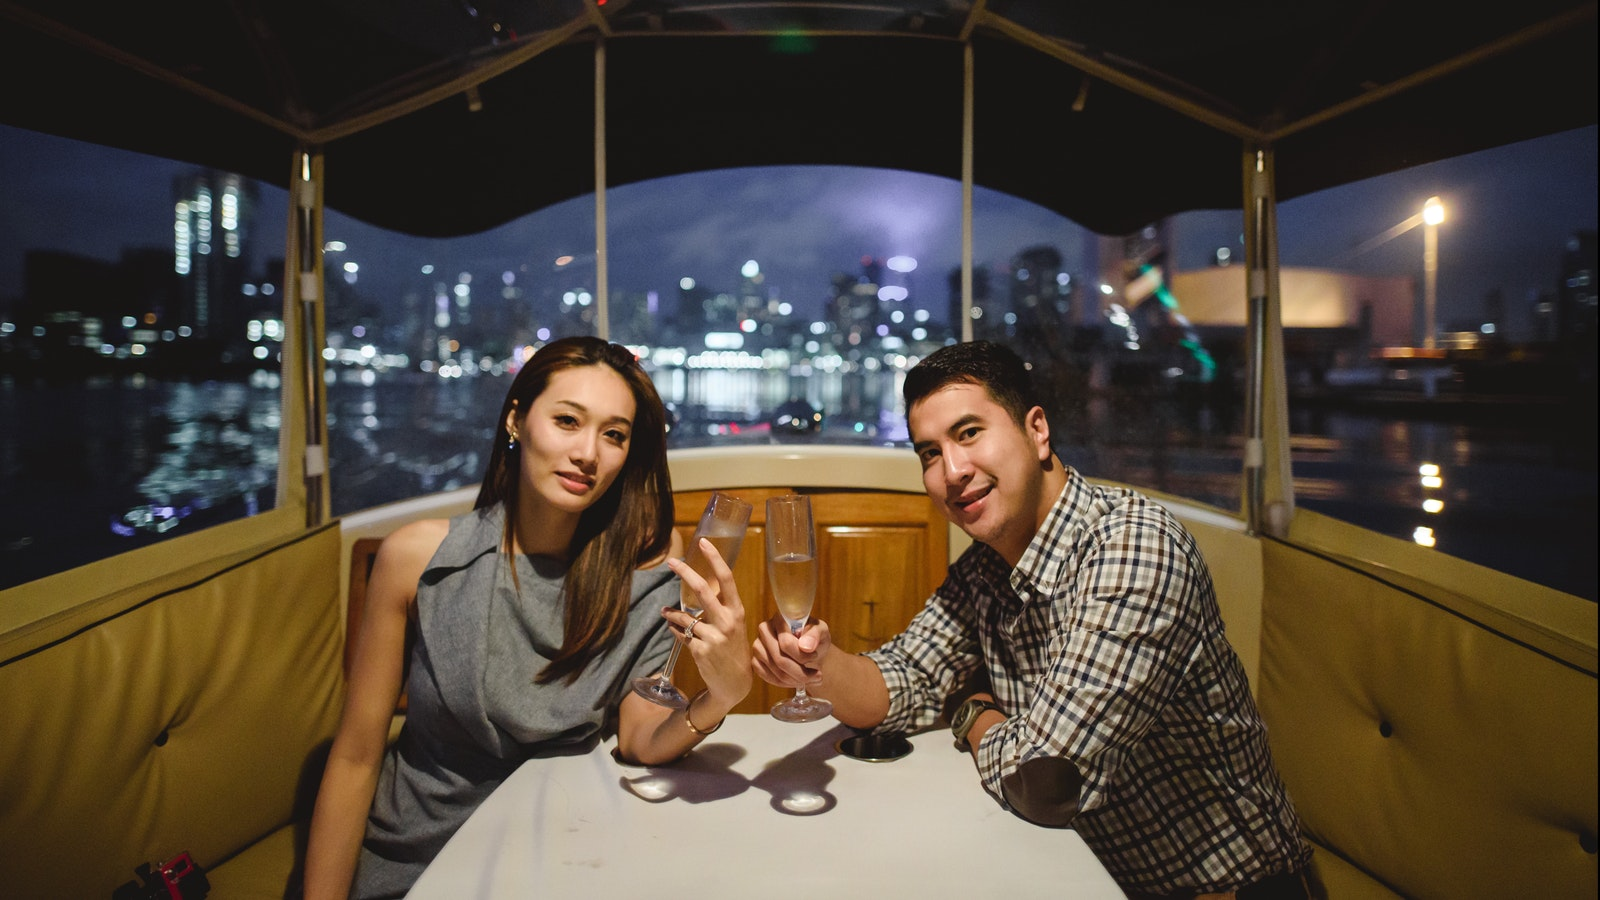 Luxury Yarra River cruise to propose to your girlfriend